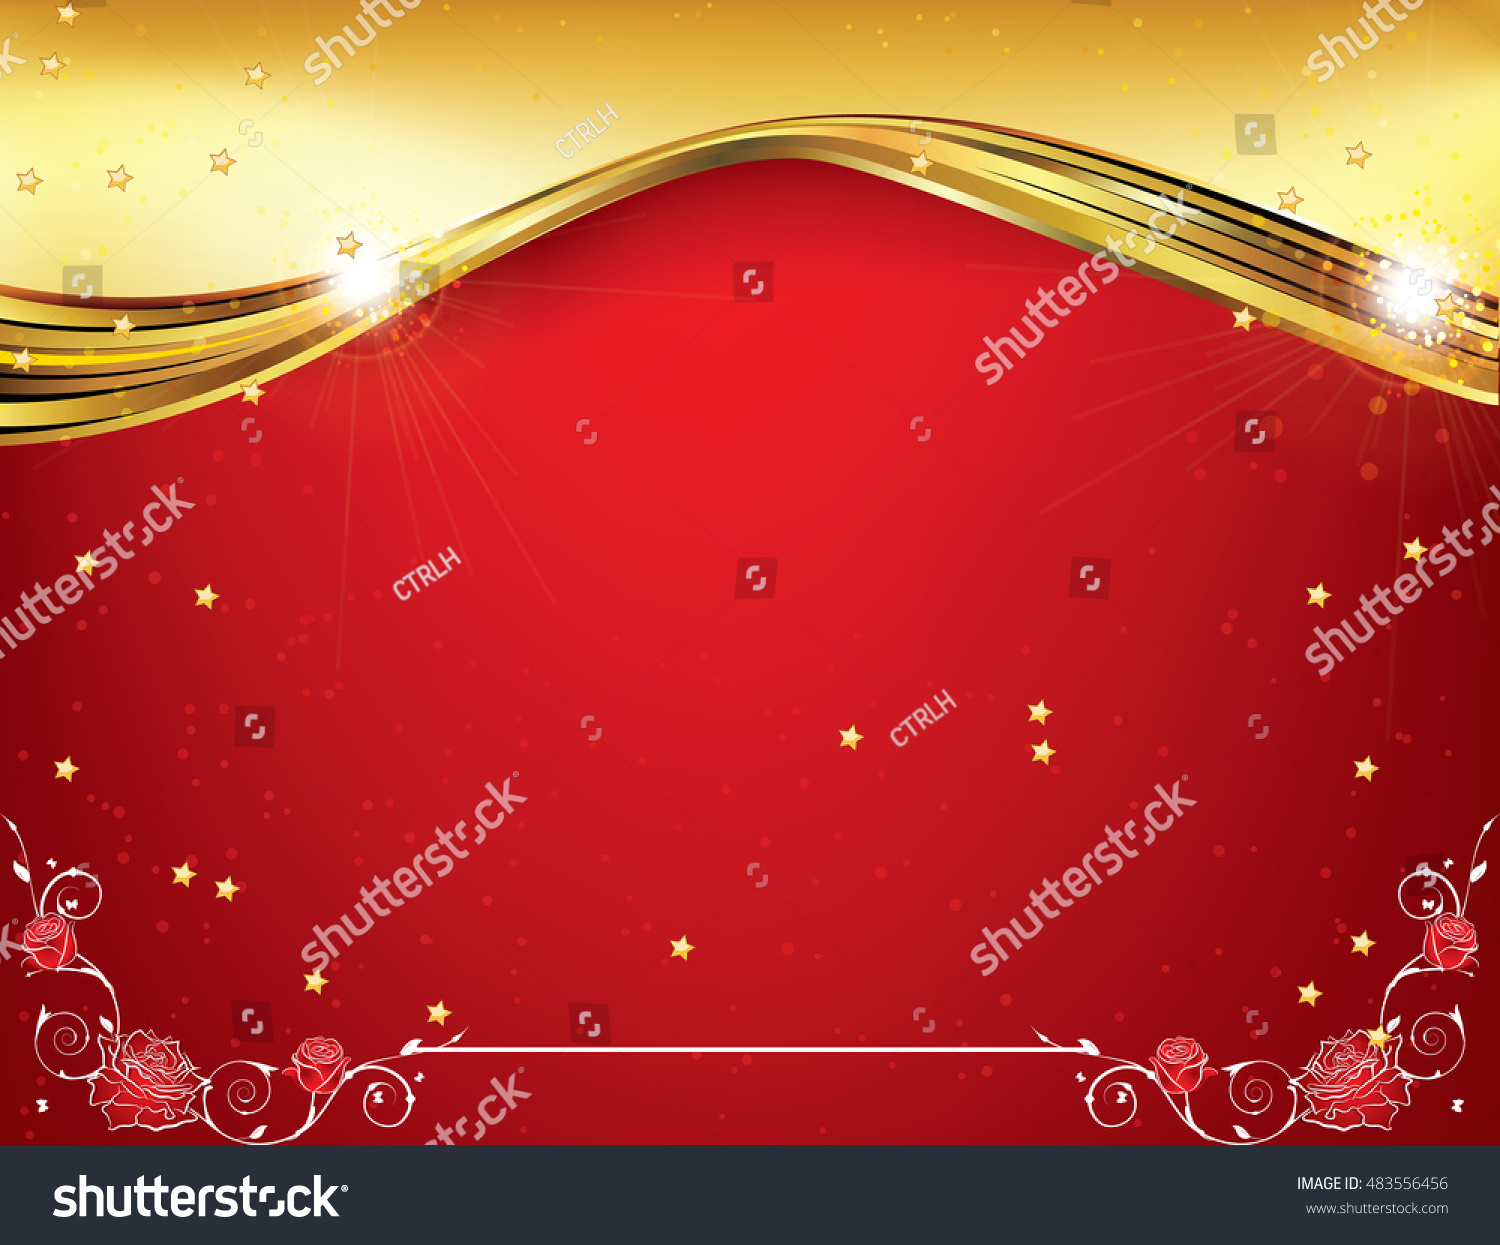 Red Celebration Background Any Occasion Winter Stock Vector (Royalty ...